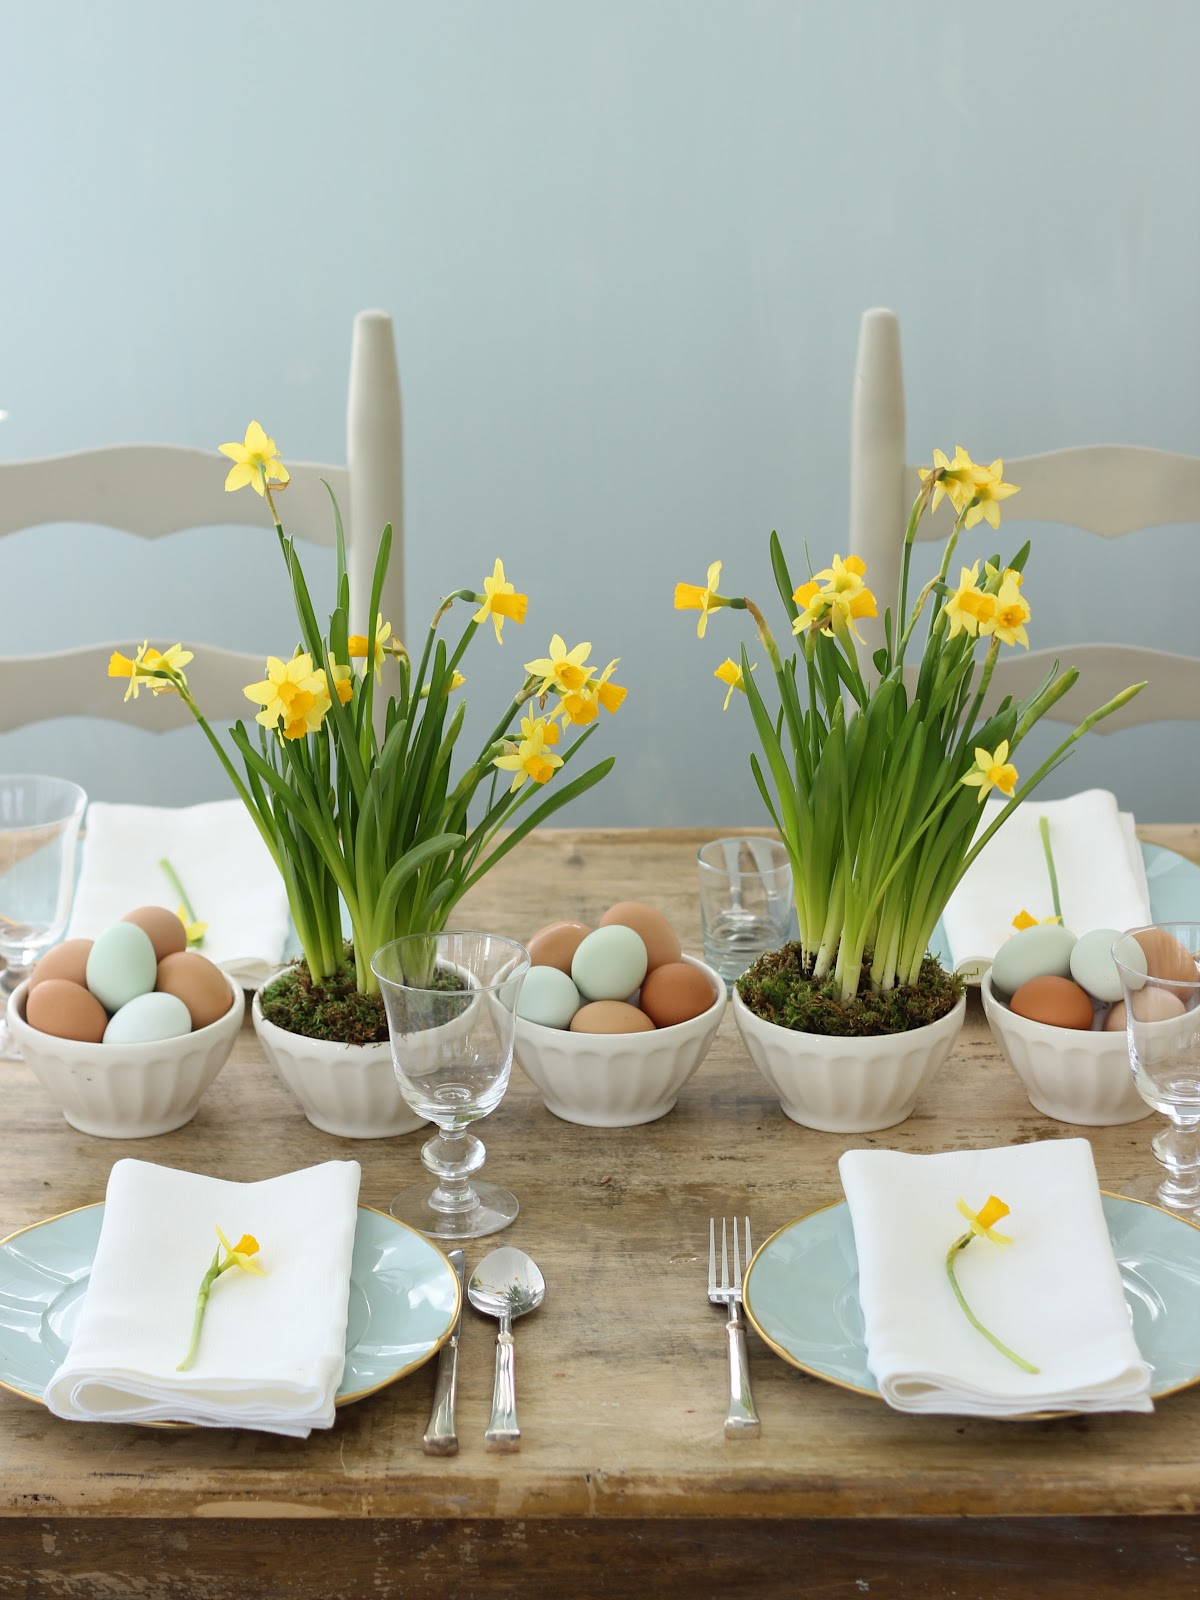 Jenny steffens hobick spring easter centerpieces yellow daffodils blue eggs - Easter table decorations meals special ...